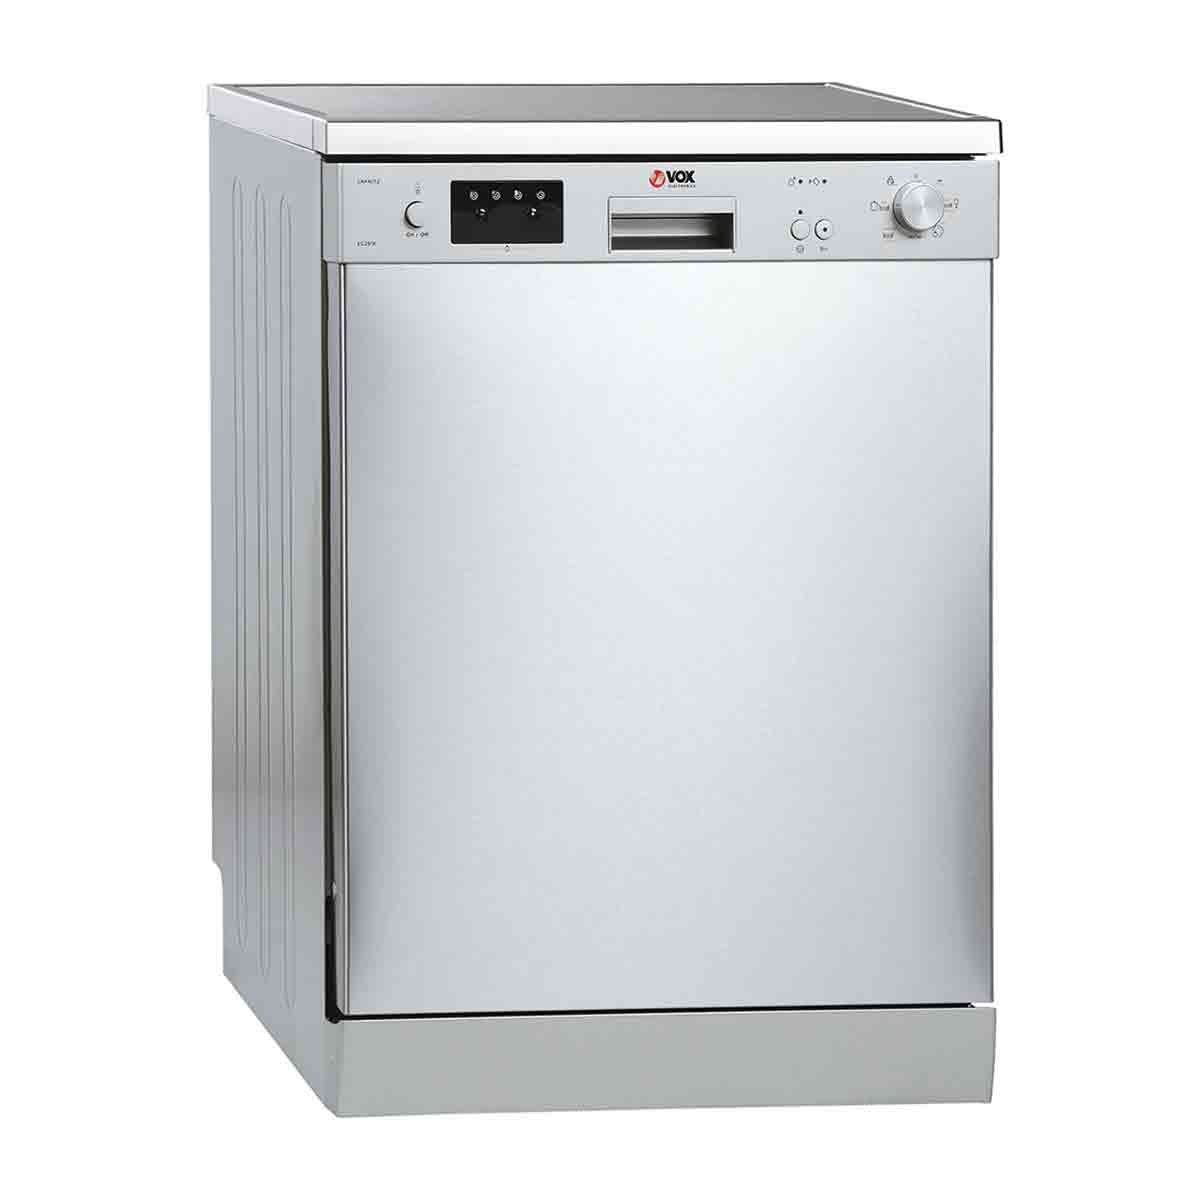 Dishwasher LC 25 IX